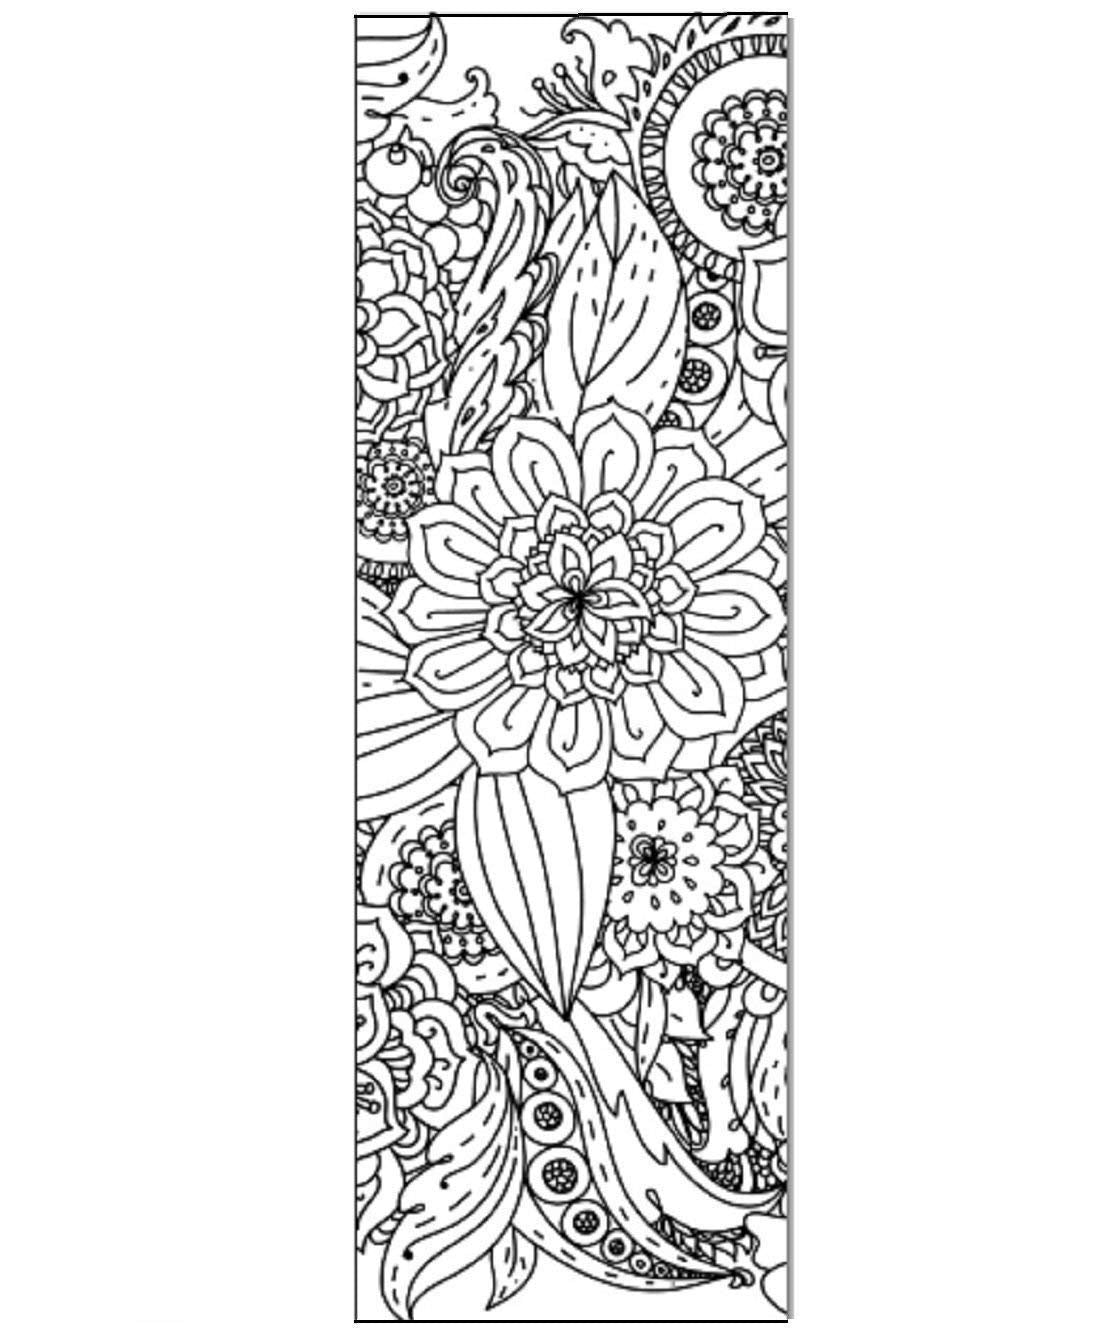 Floral Color Your Own Bookmarks Anti Stress Art Therapy Adult ...